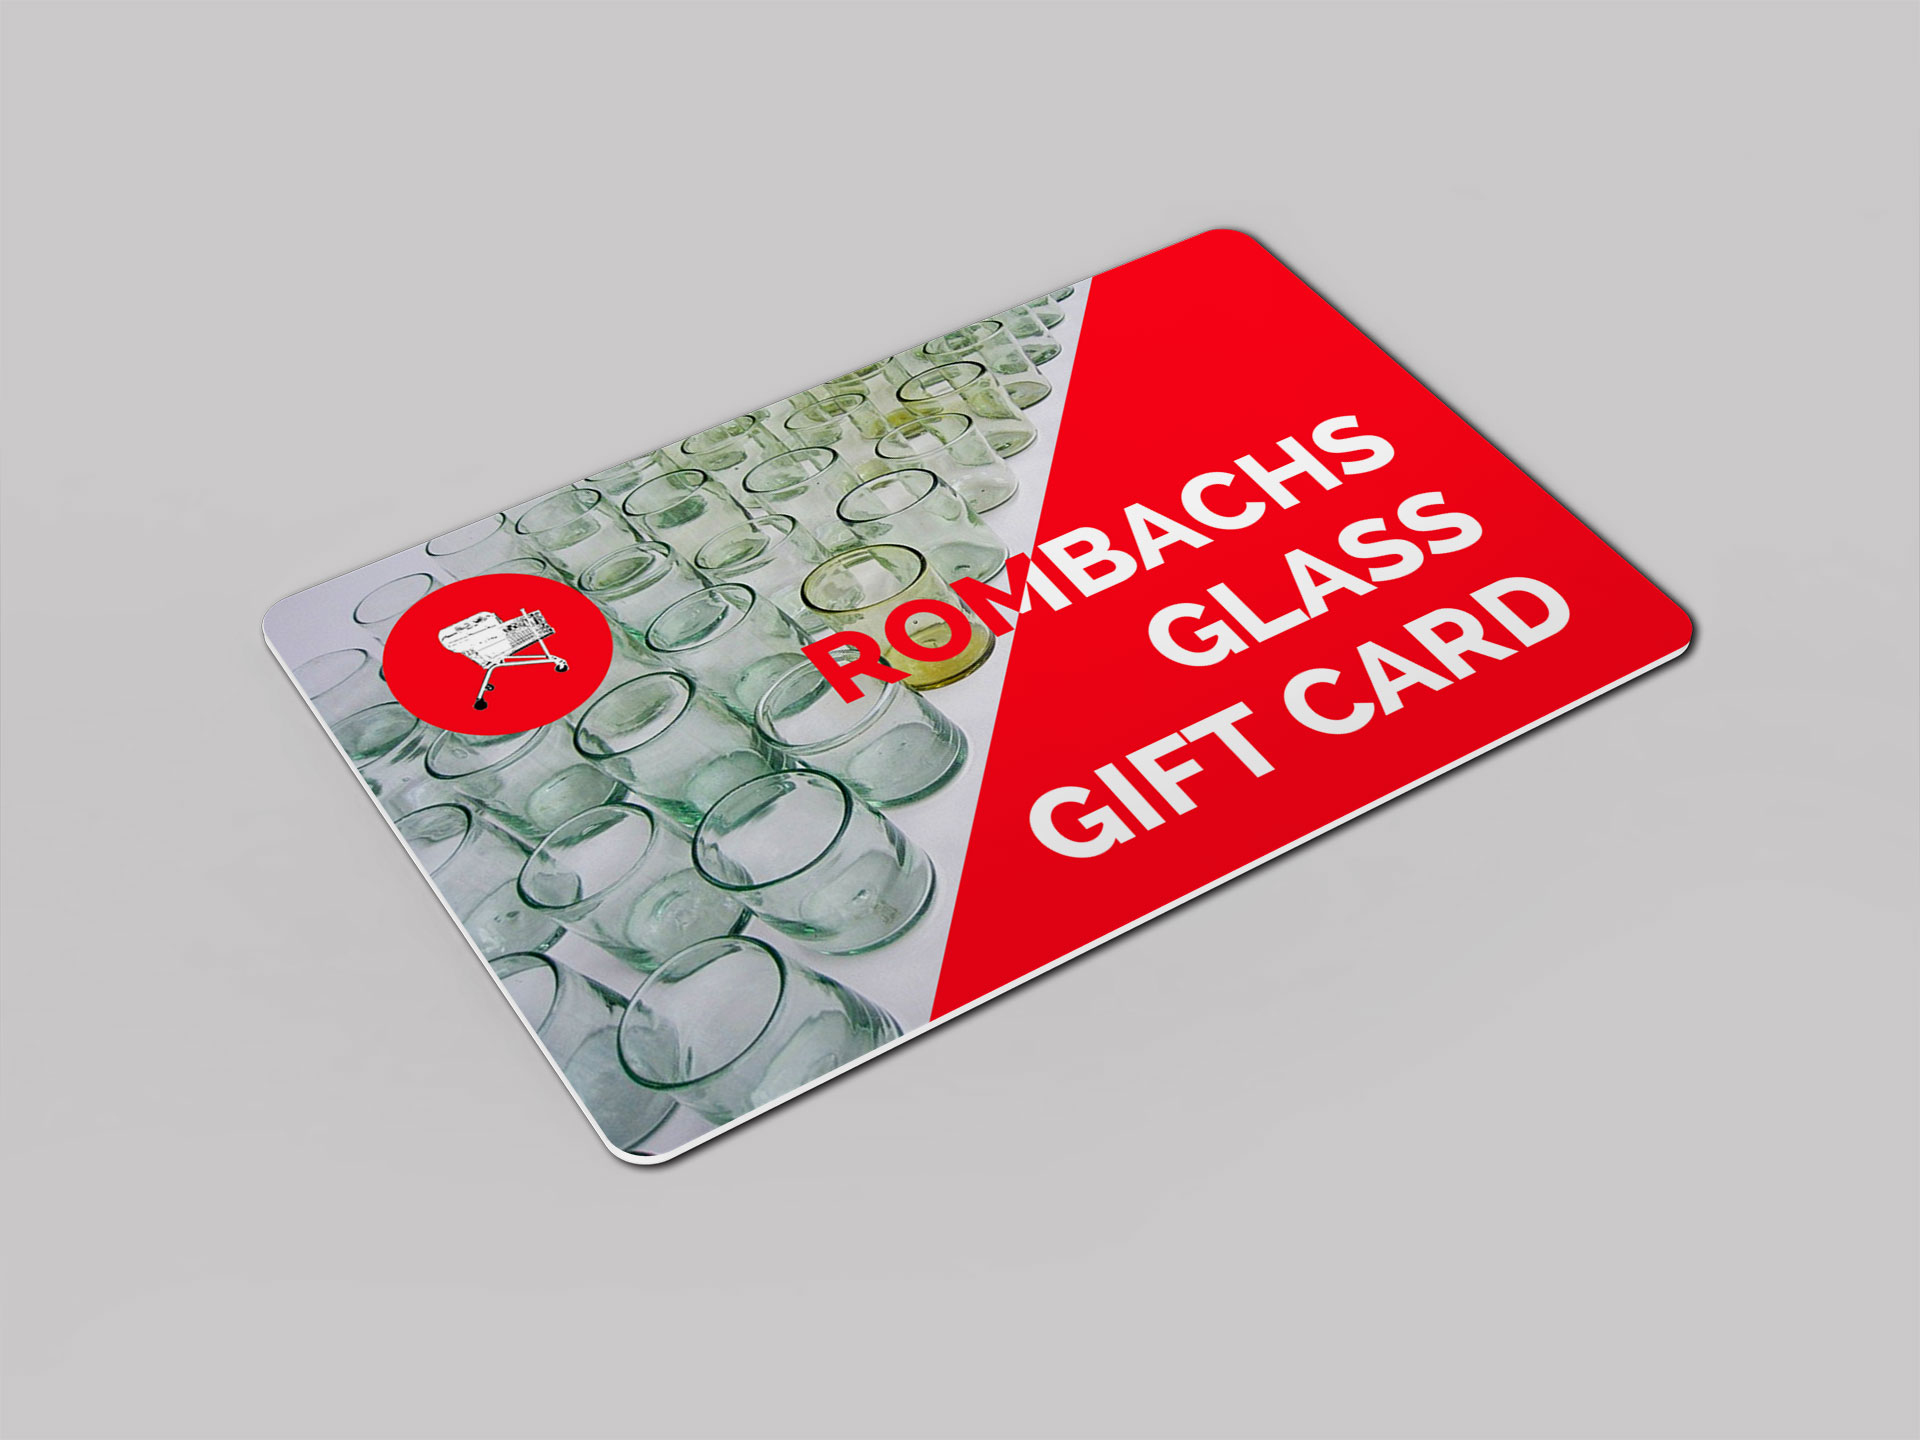 rombachs glass gift card